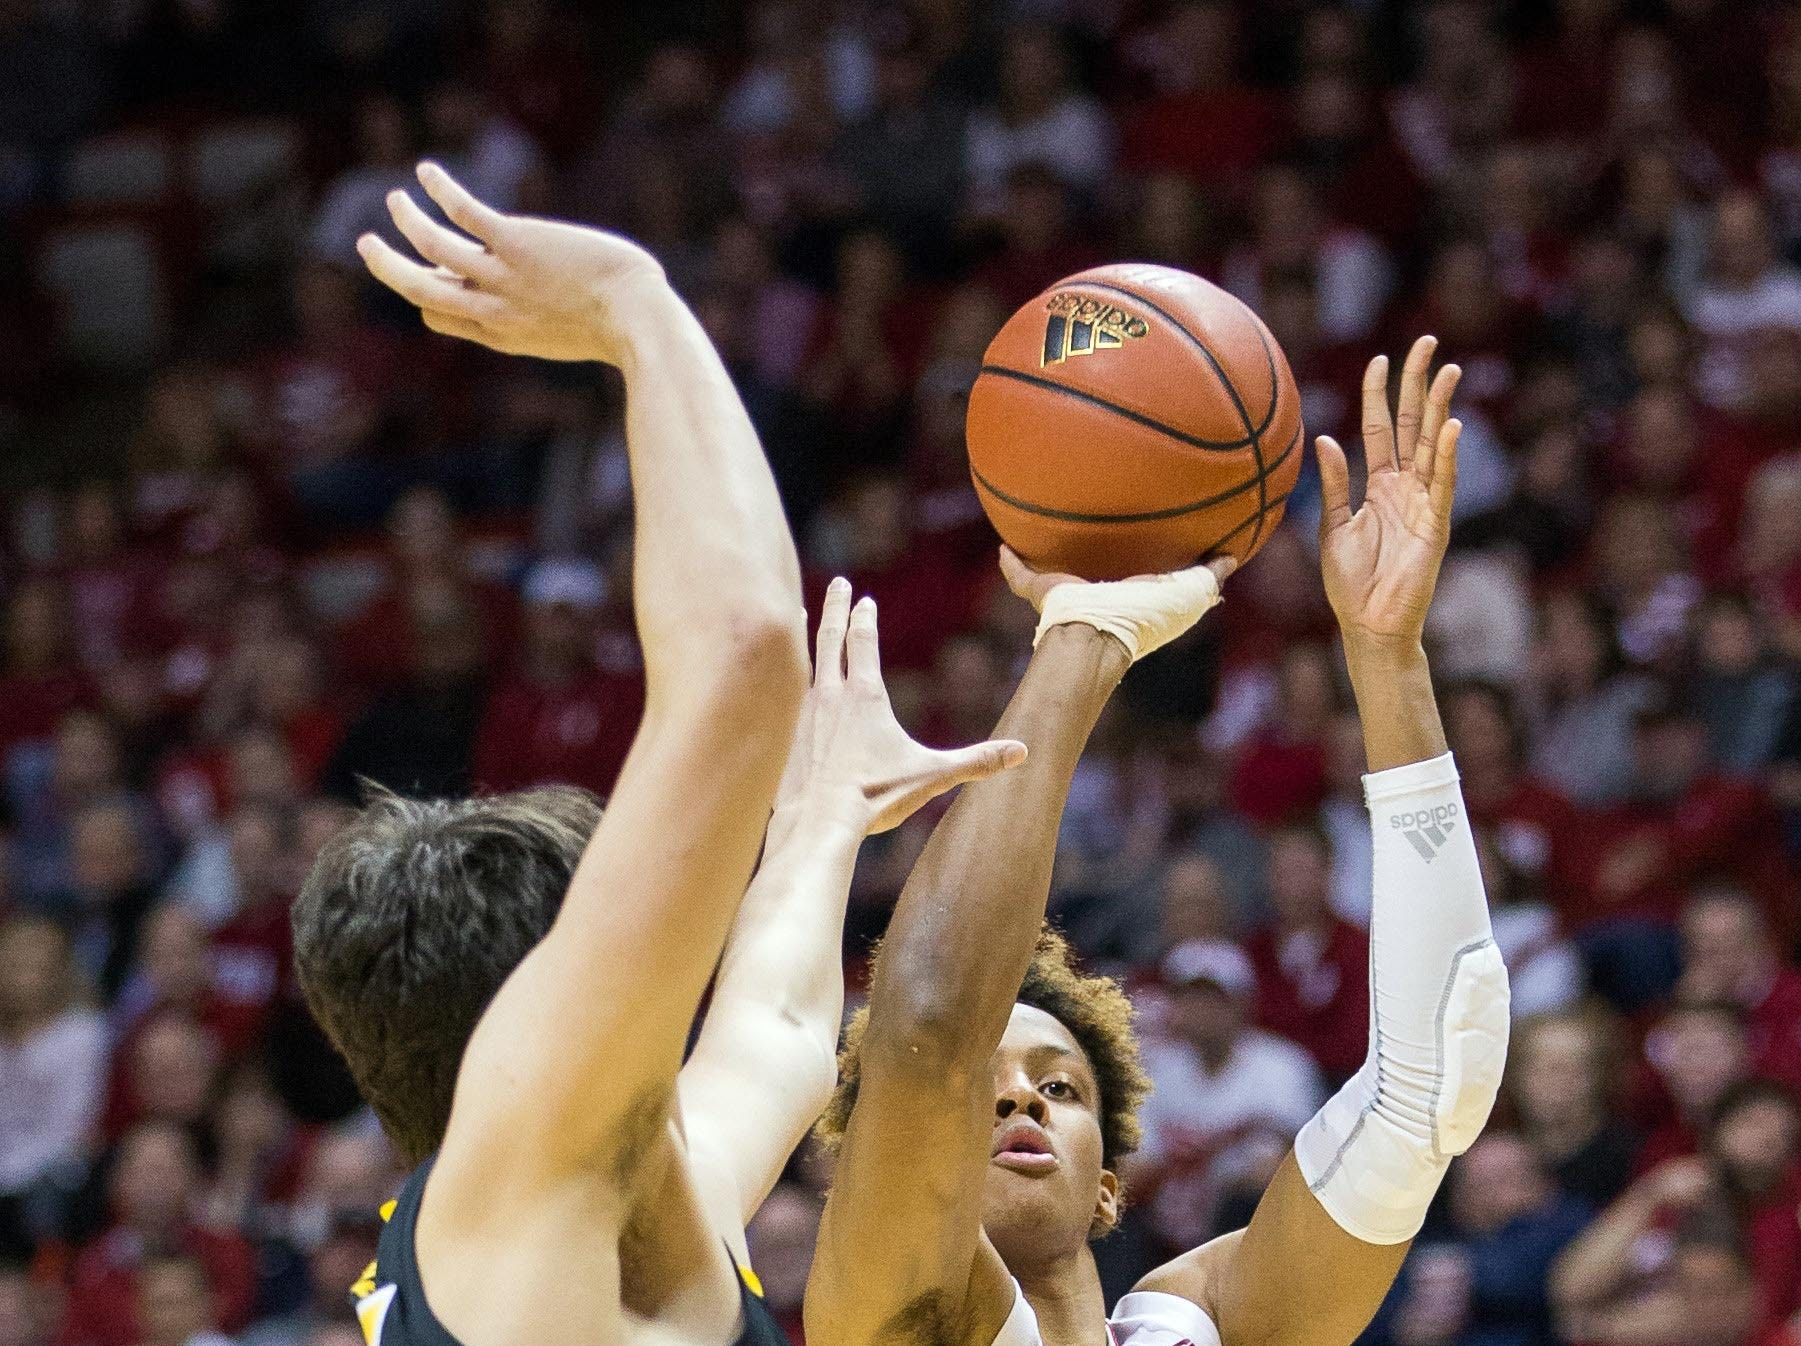 Indiana Hoosiers guard Romeo Langford (0) shoots the ball over Iowa Hawkeyes forward Luka Garza (55) in the first half at Assembly Hall. Mandatory Credit: Trevor Ruszkowski-USA TODAY Sports